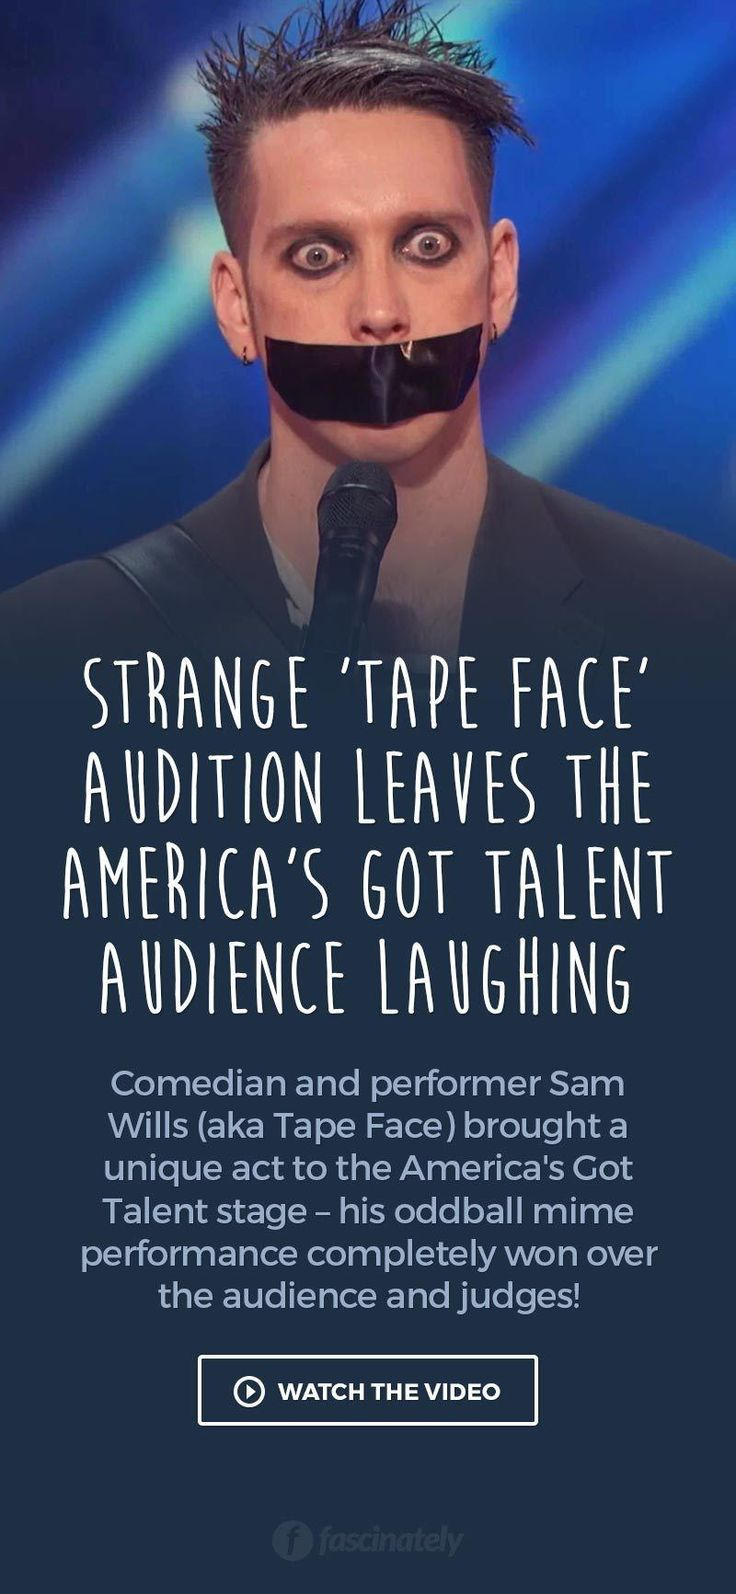 Strange 'Tape Face' Audition Leaves the America's Got Talent Audience Laughing